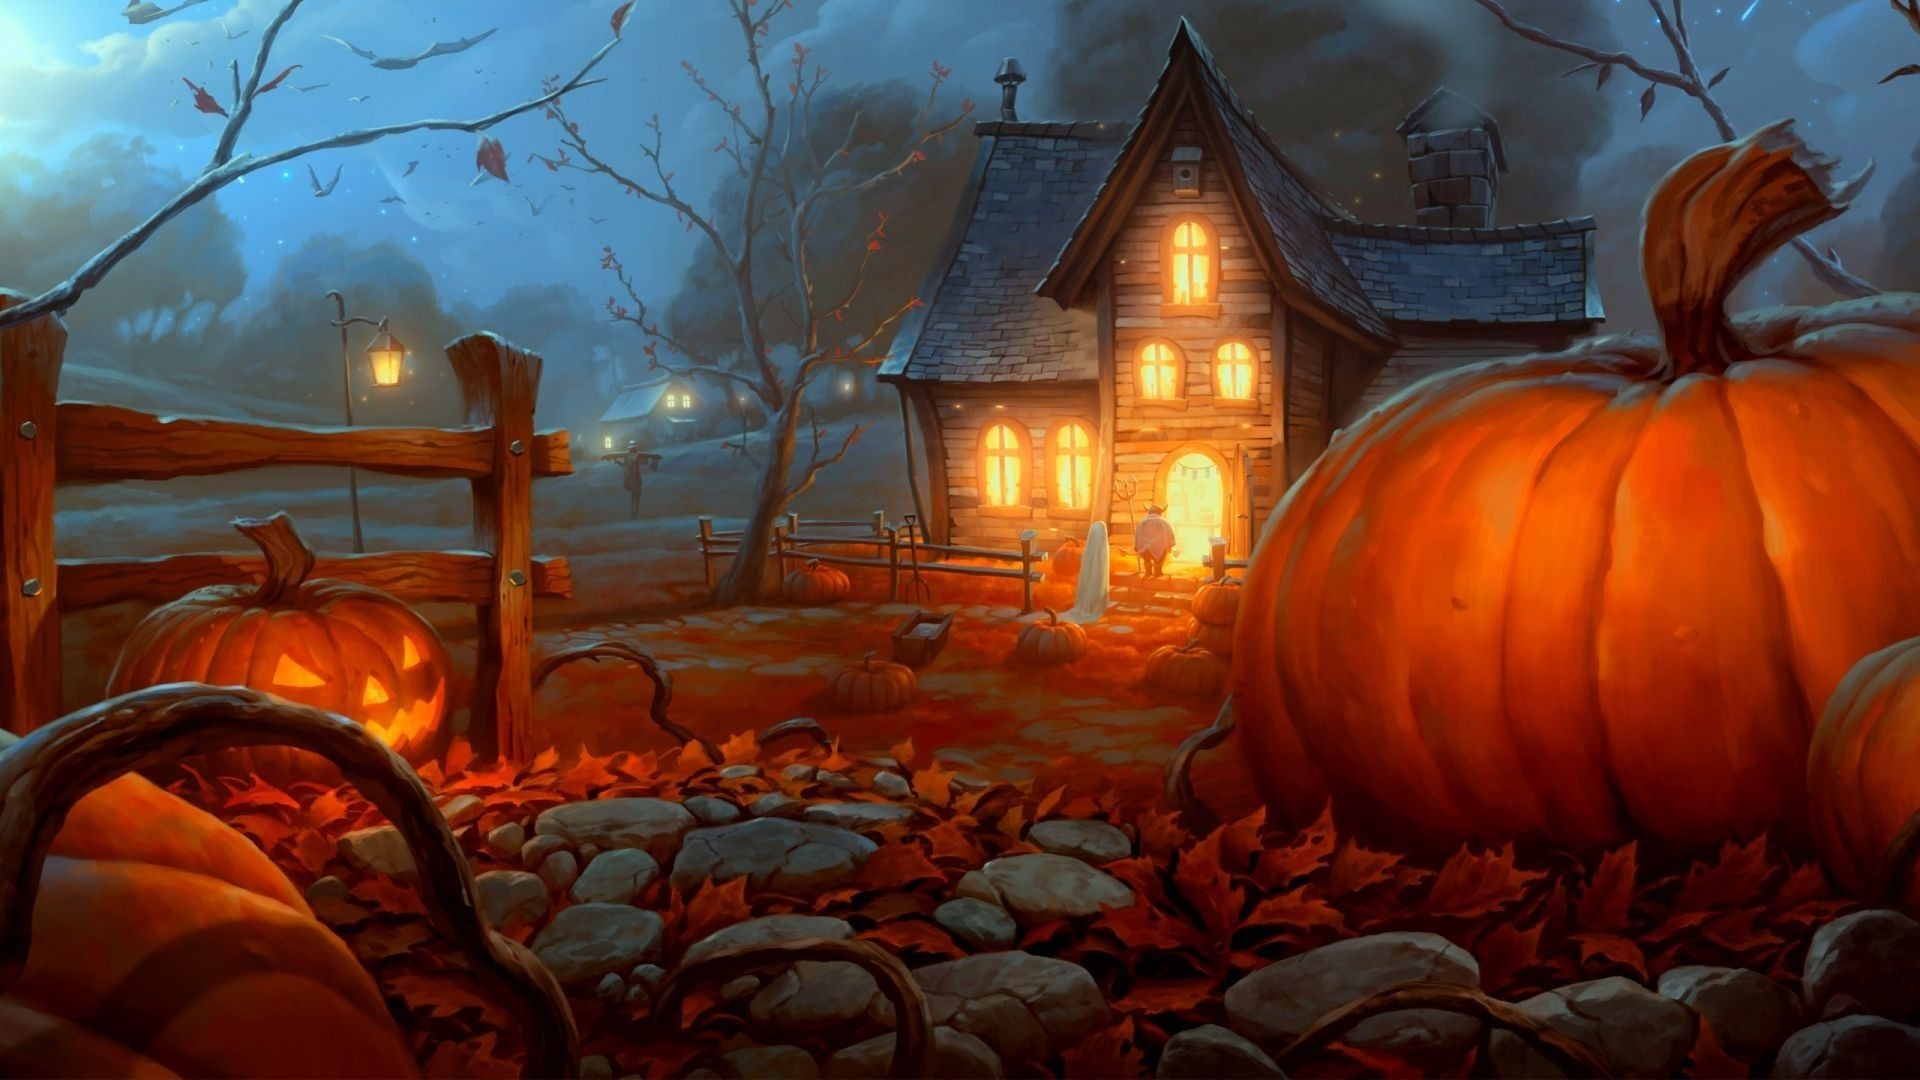 1920x1080 Hd Halloween Wallpaper Halloween Wallpaper Backgrounds Halloween Desktop Wallpaper Halloween Images